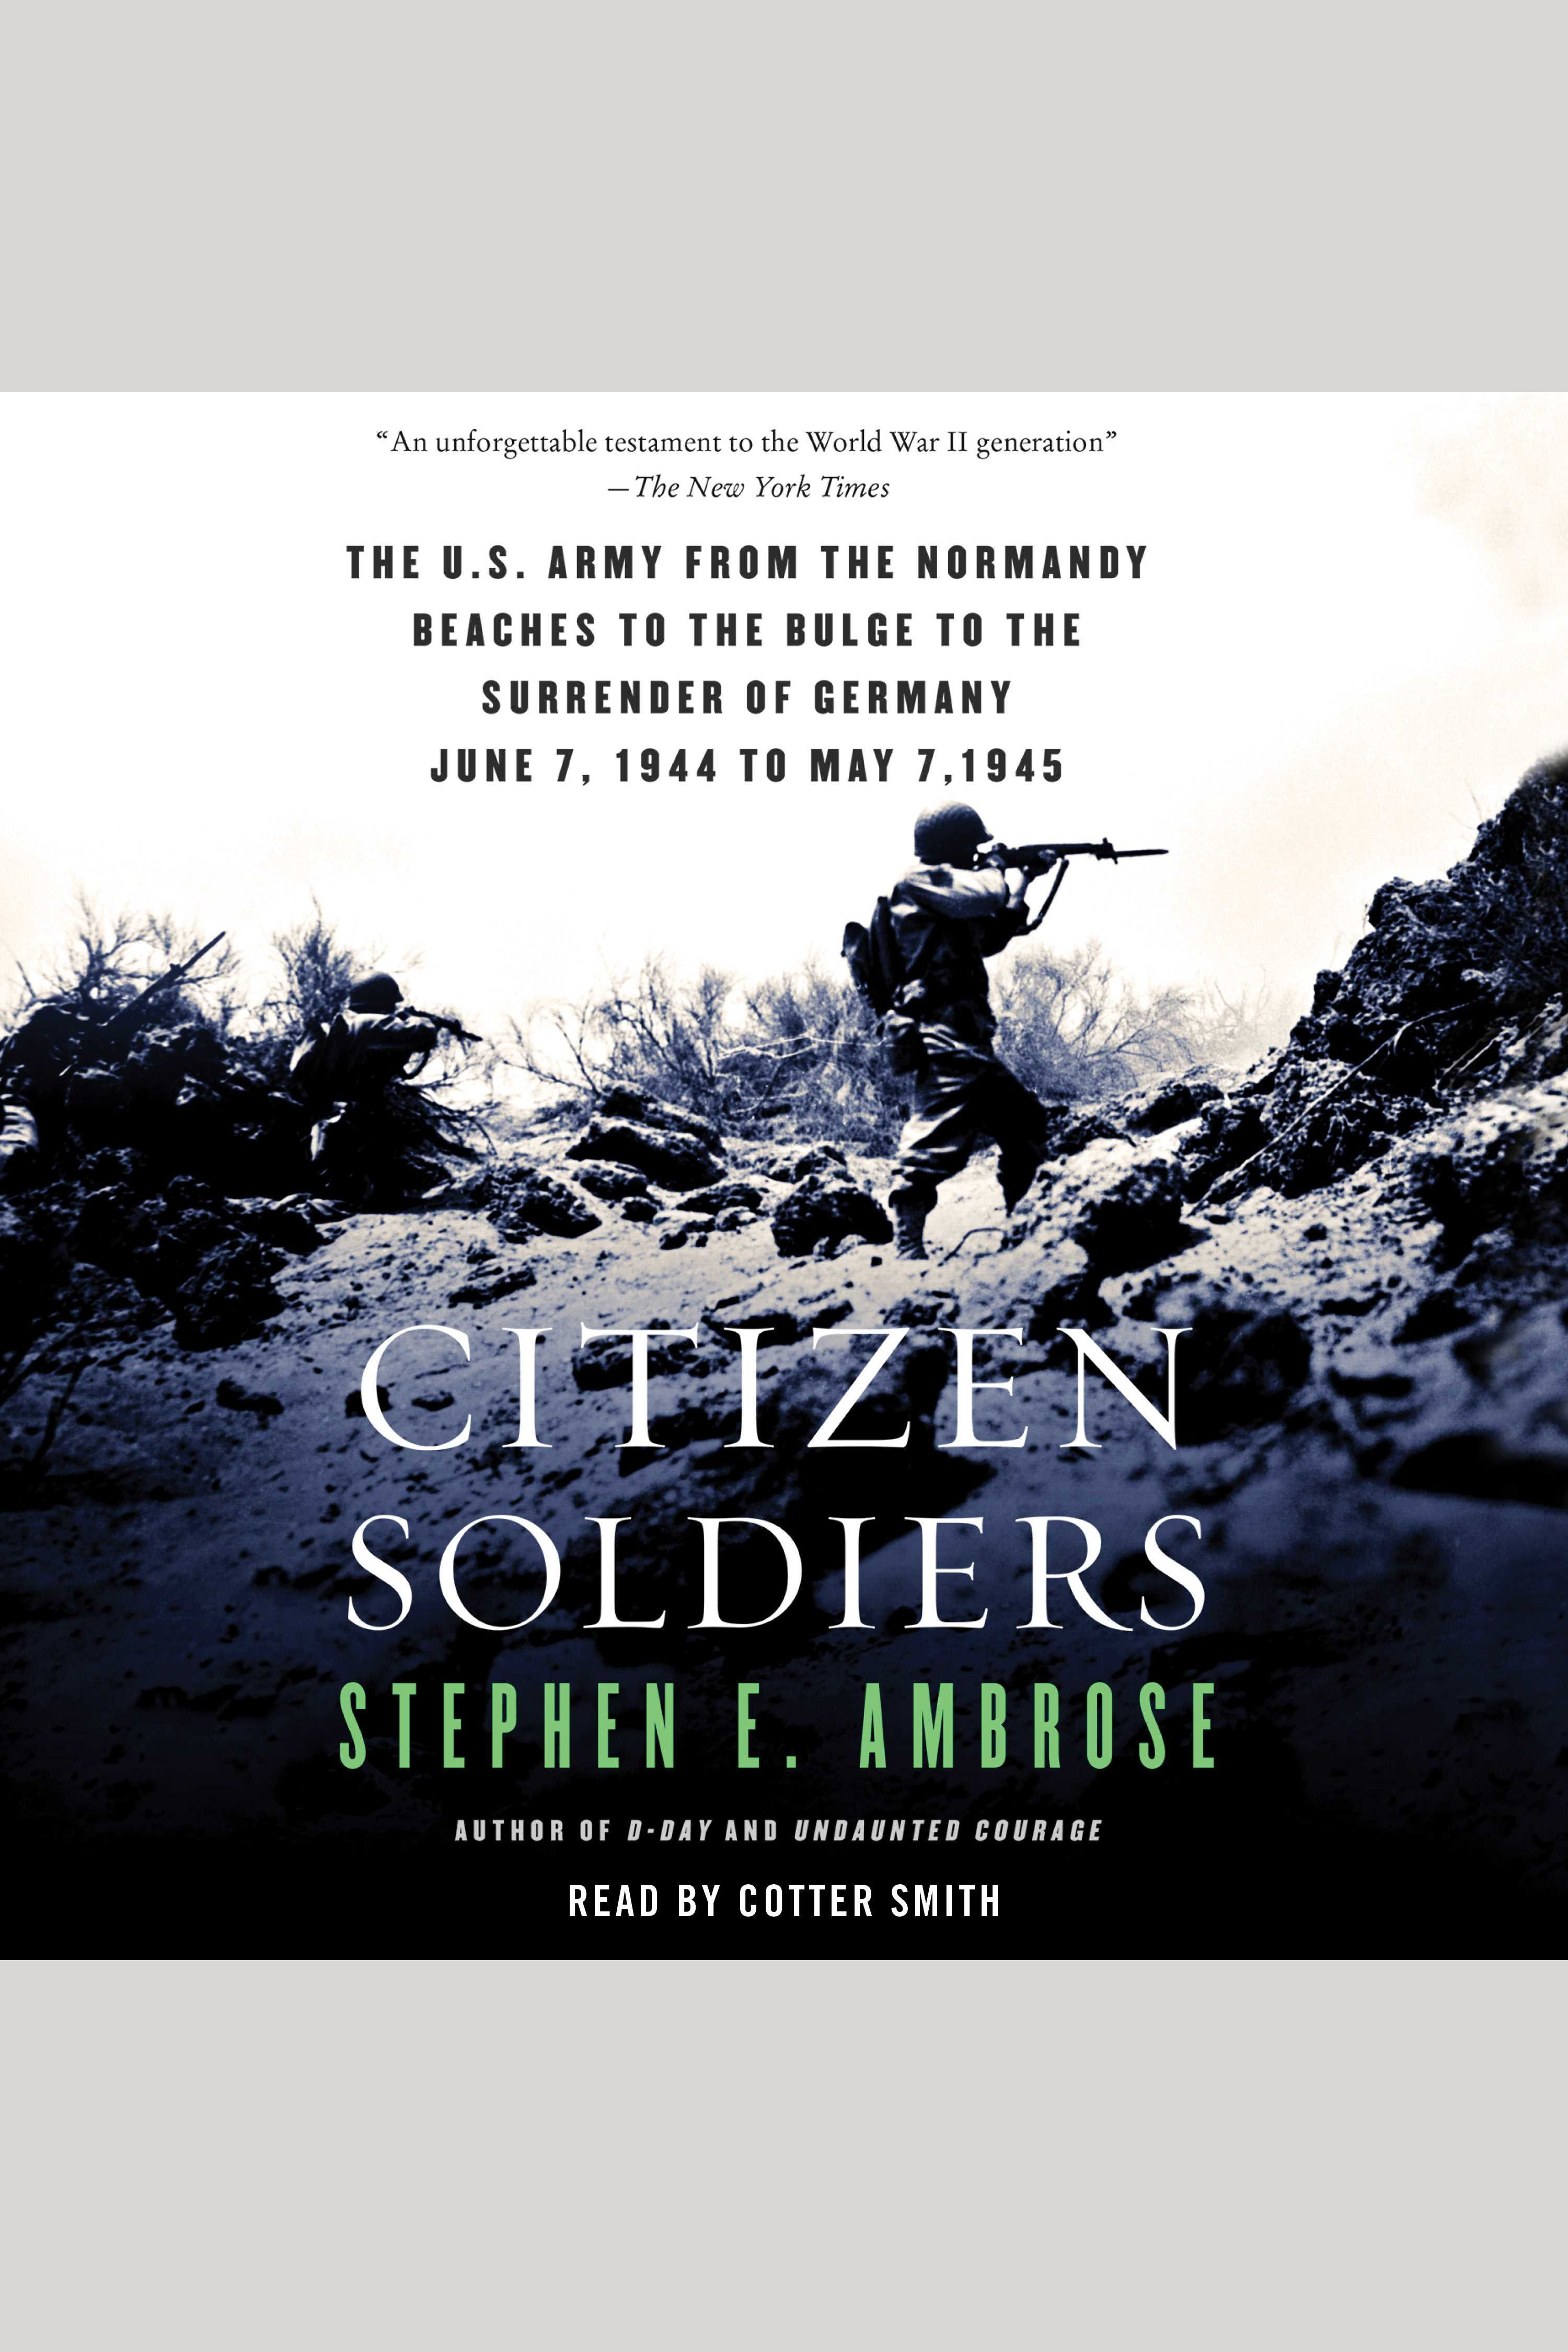 Citizen Soldiers The U S Army from the Normandy Beaches to the Bulge to the Surrender of Germany cover image